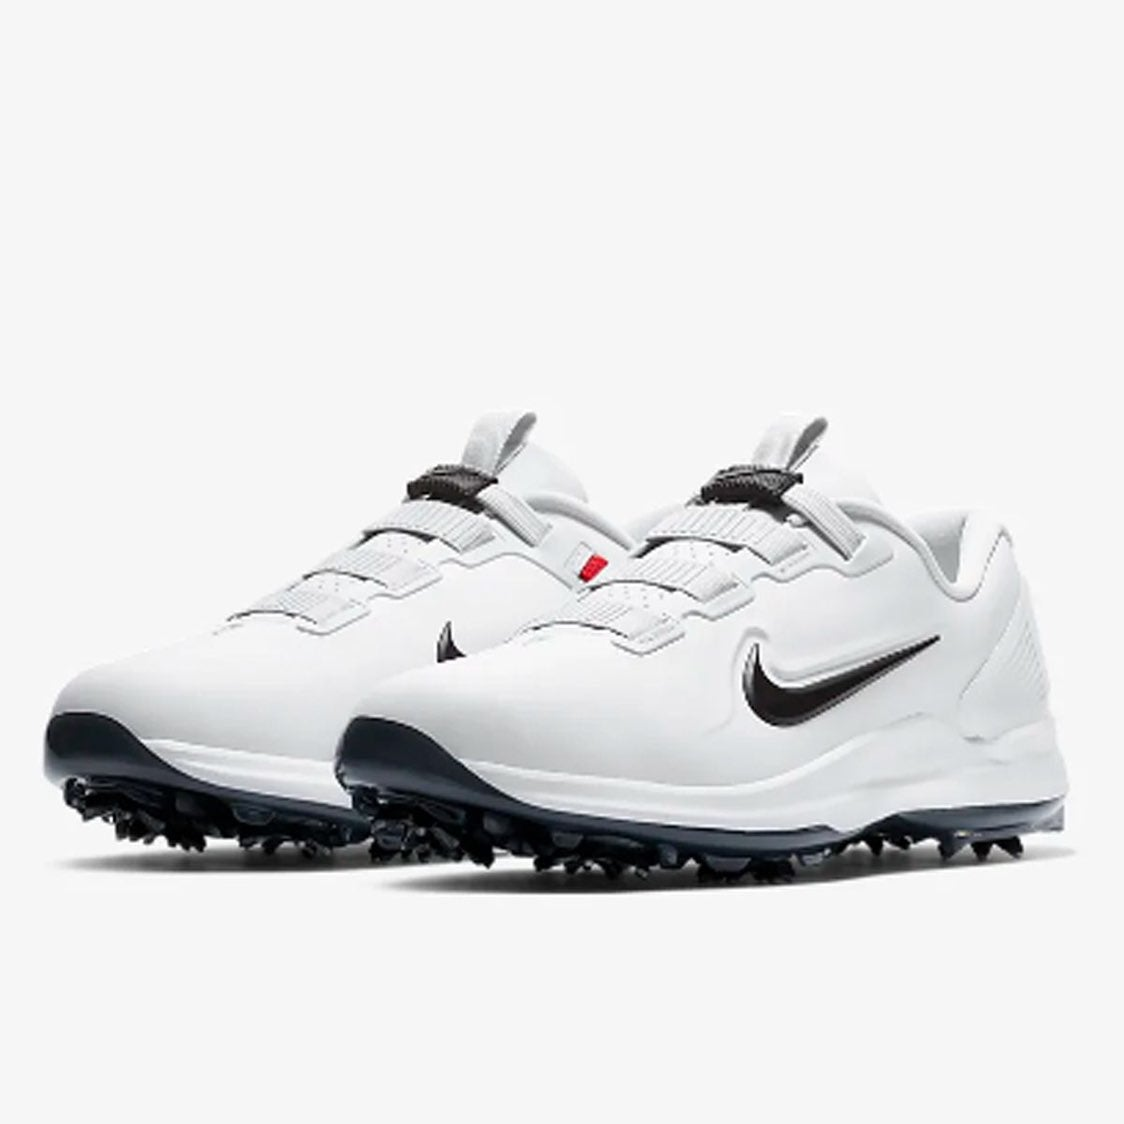 Nike Golf Cleat Tiger Woods FastFit 71